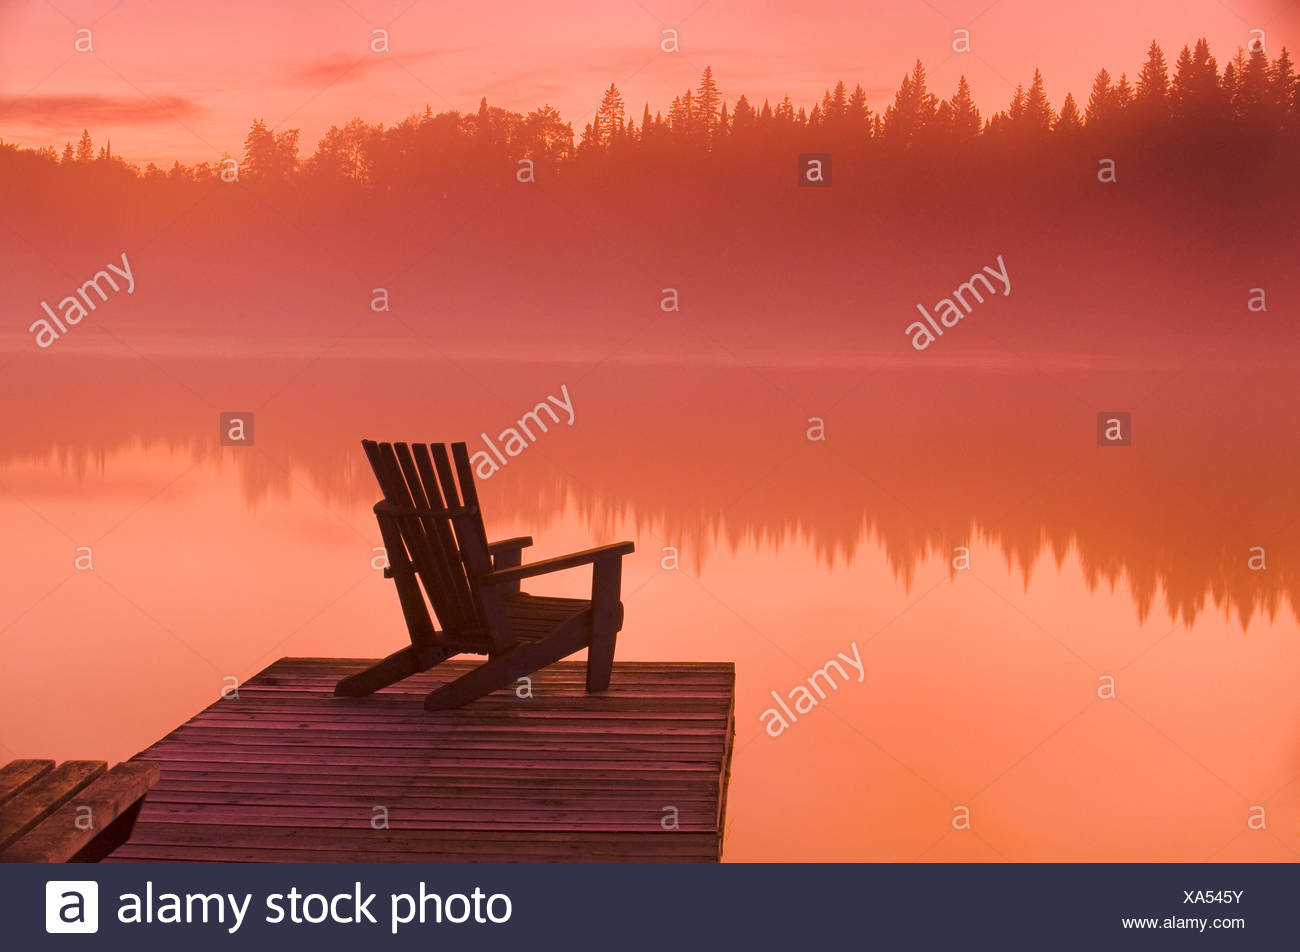 Muskoka chair on dock, Glad Lake, Duck Mountain Provincial Park, Manitoba, Canada - Stock Image